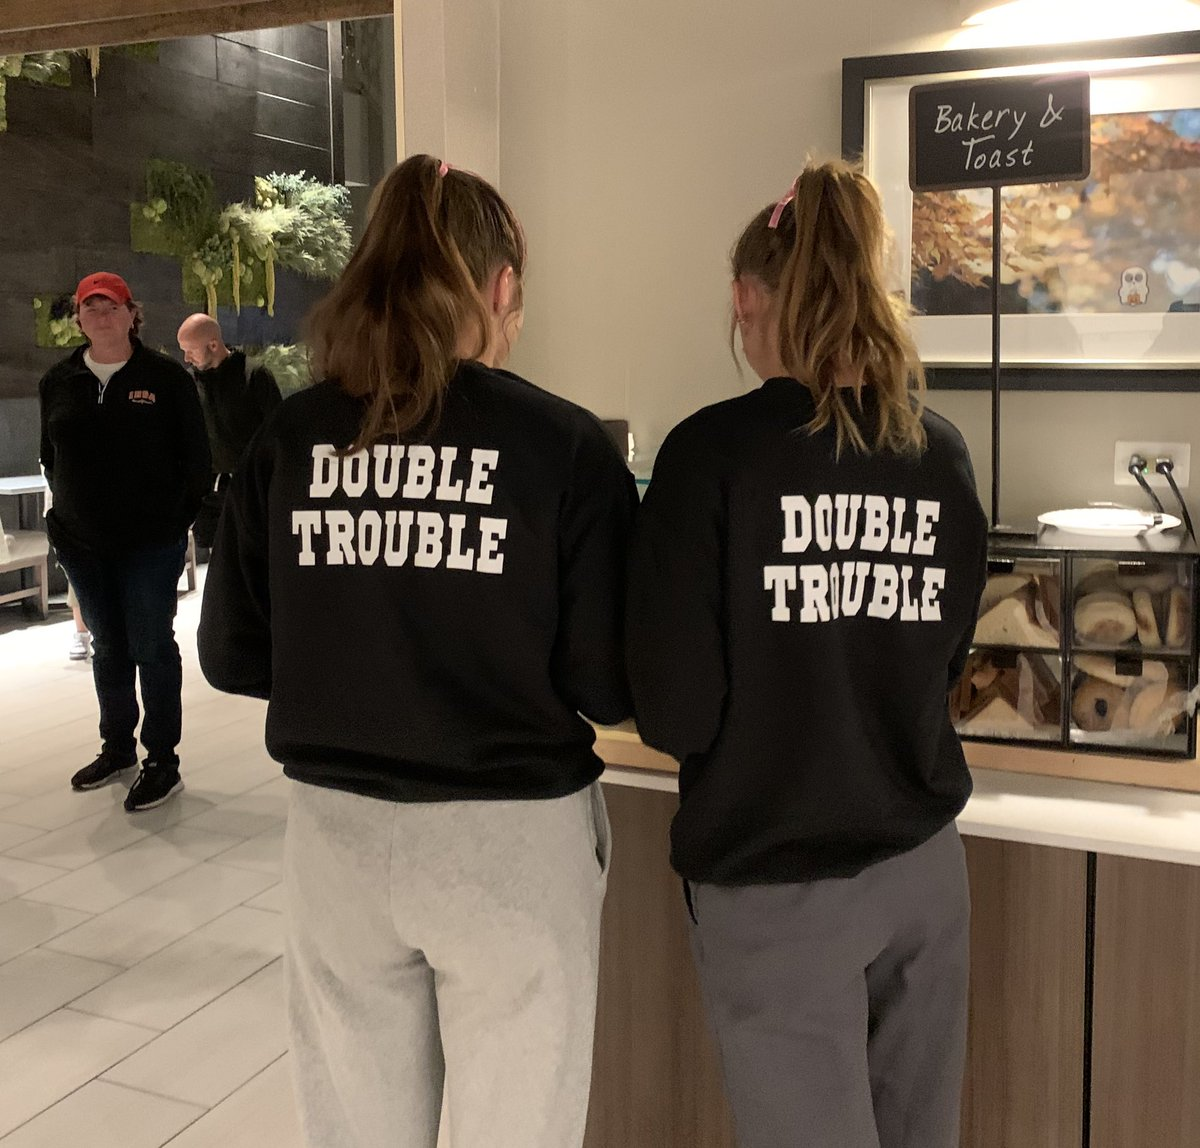 Gearing up for the next round. 2 great athletes! Go get 'em!! #DoubleTrouble